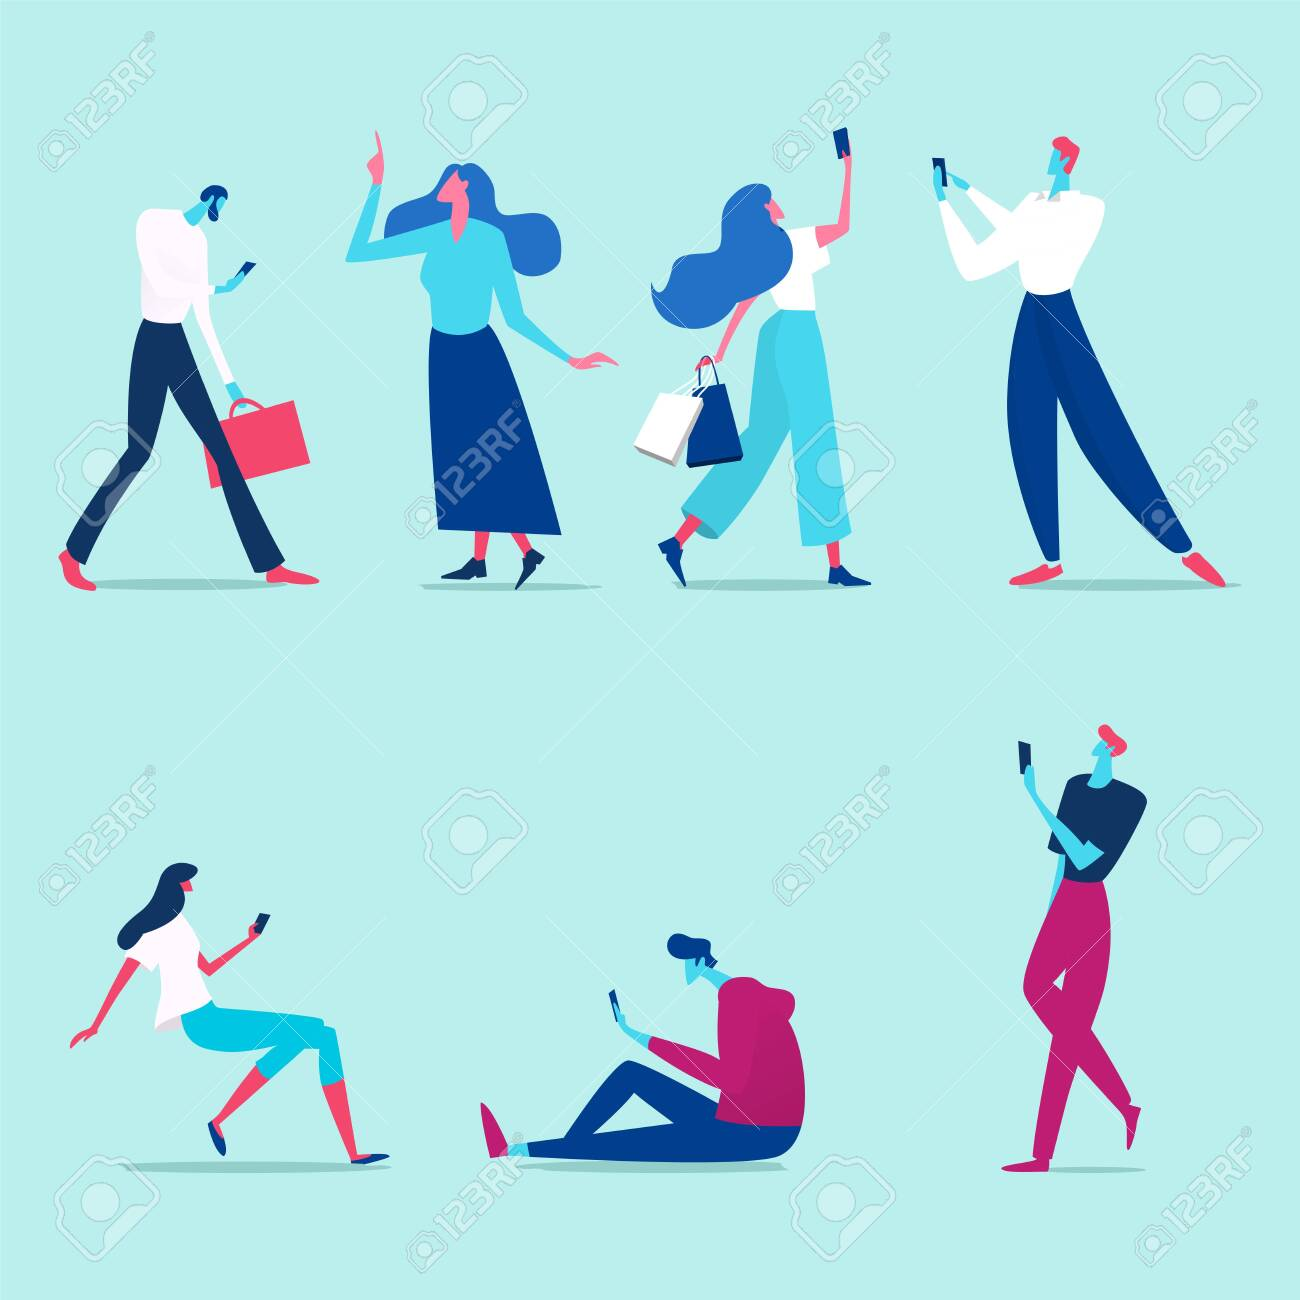 Group of male and female cartoon characters with mobile phones talking, listening to music, taking a selfie. Flat vector illustration - 142841366